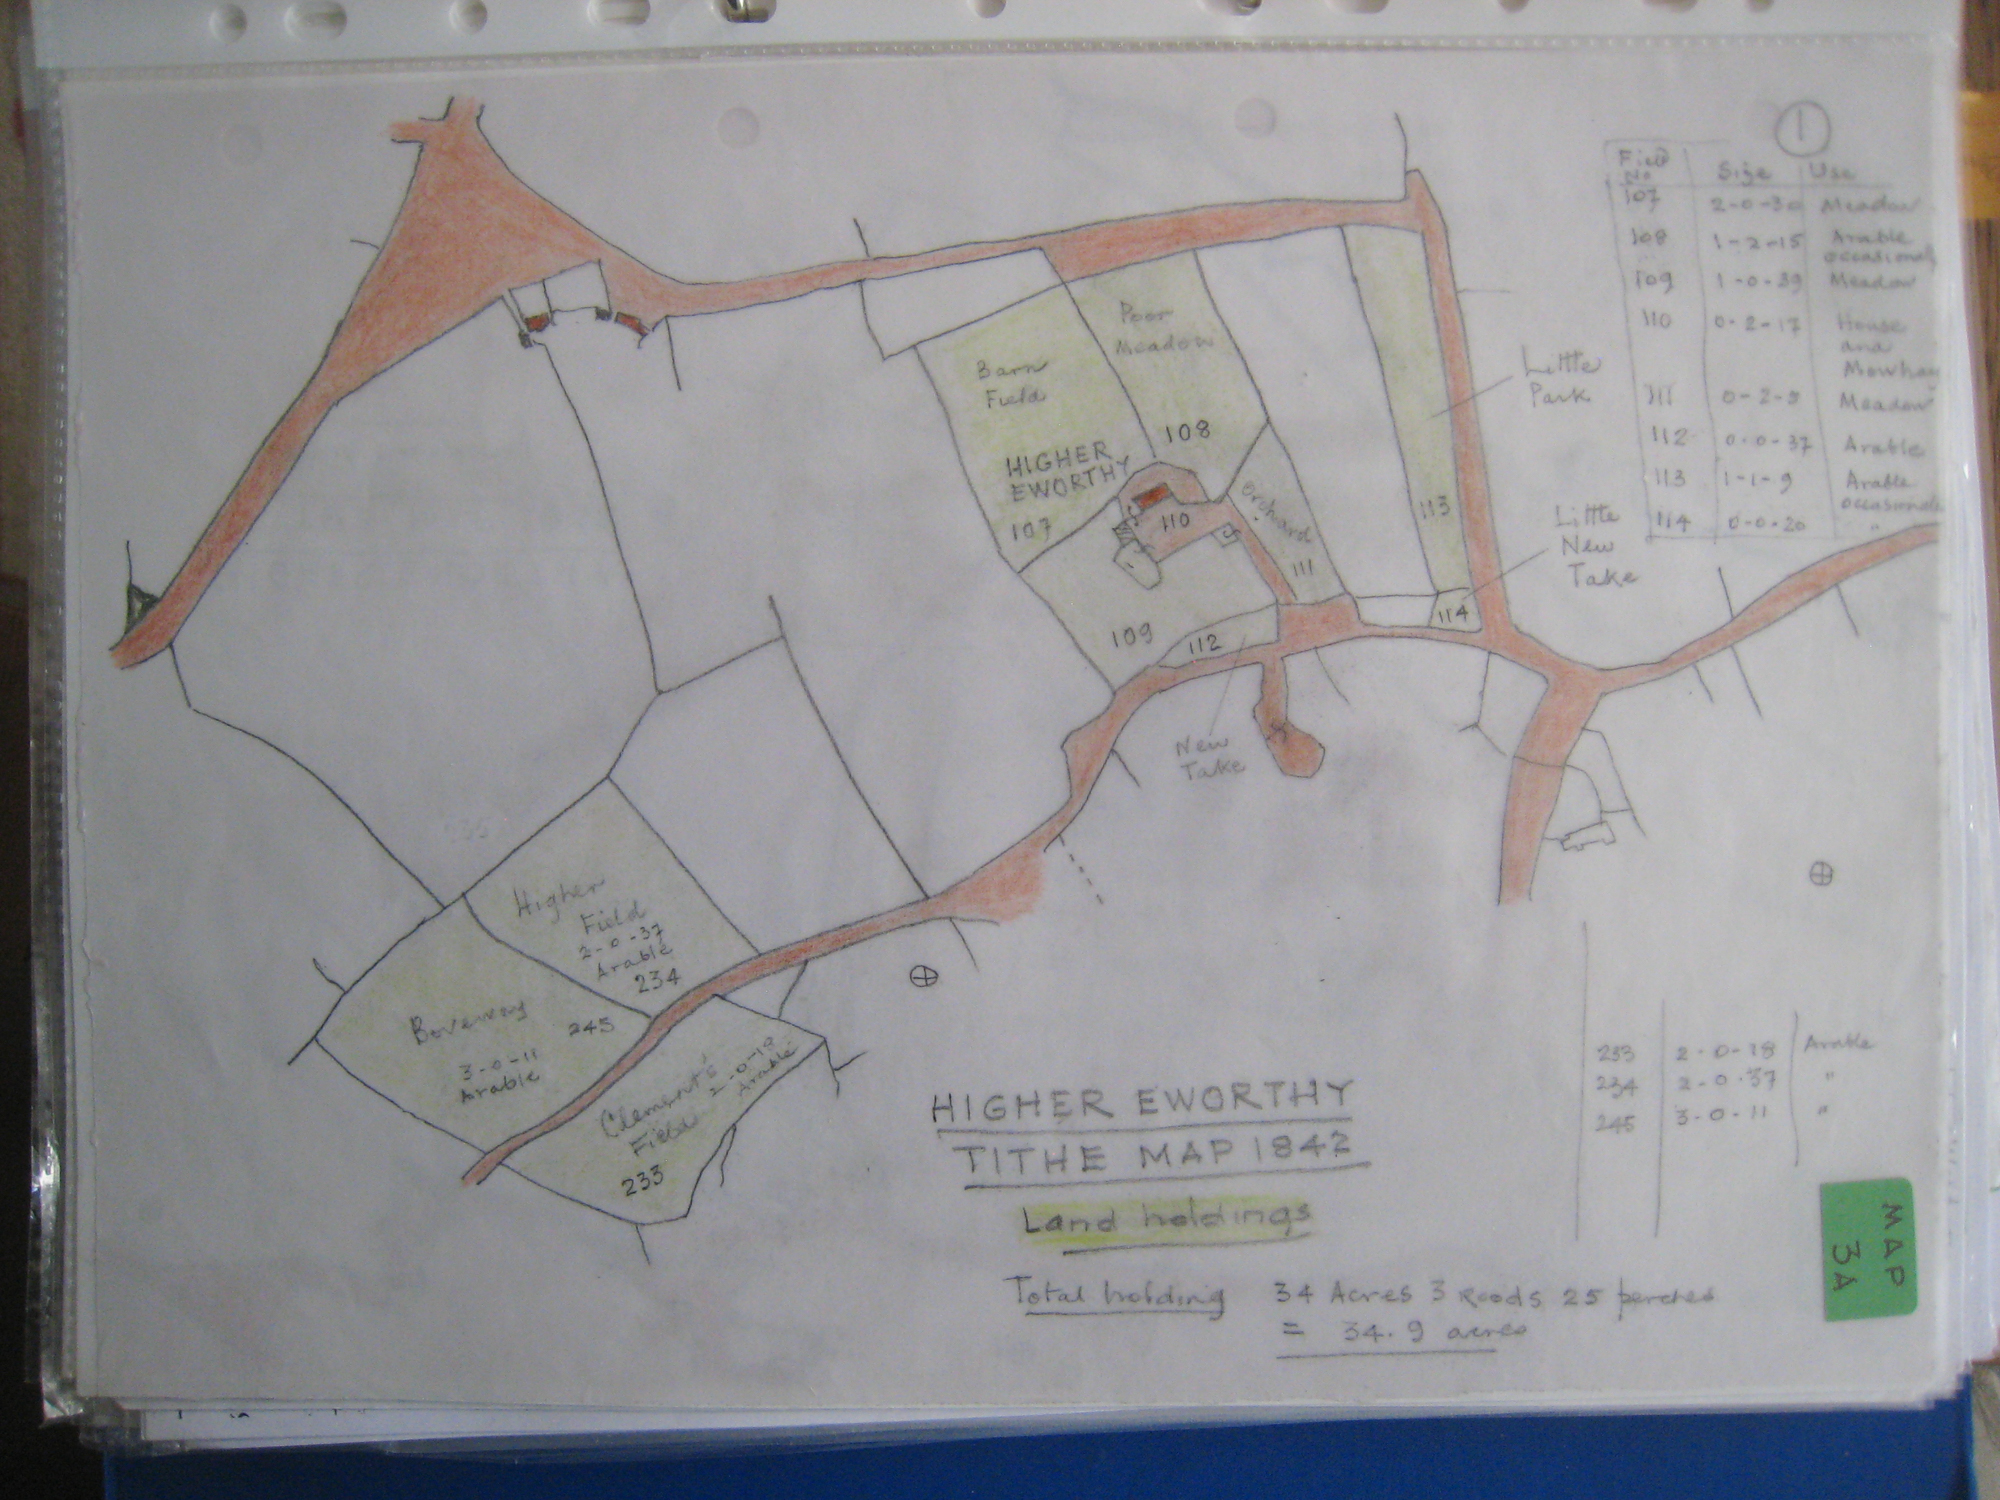 Higher Eworthy plan from tithe map 1842